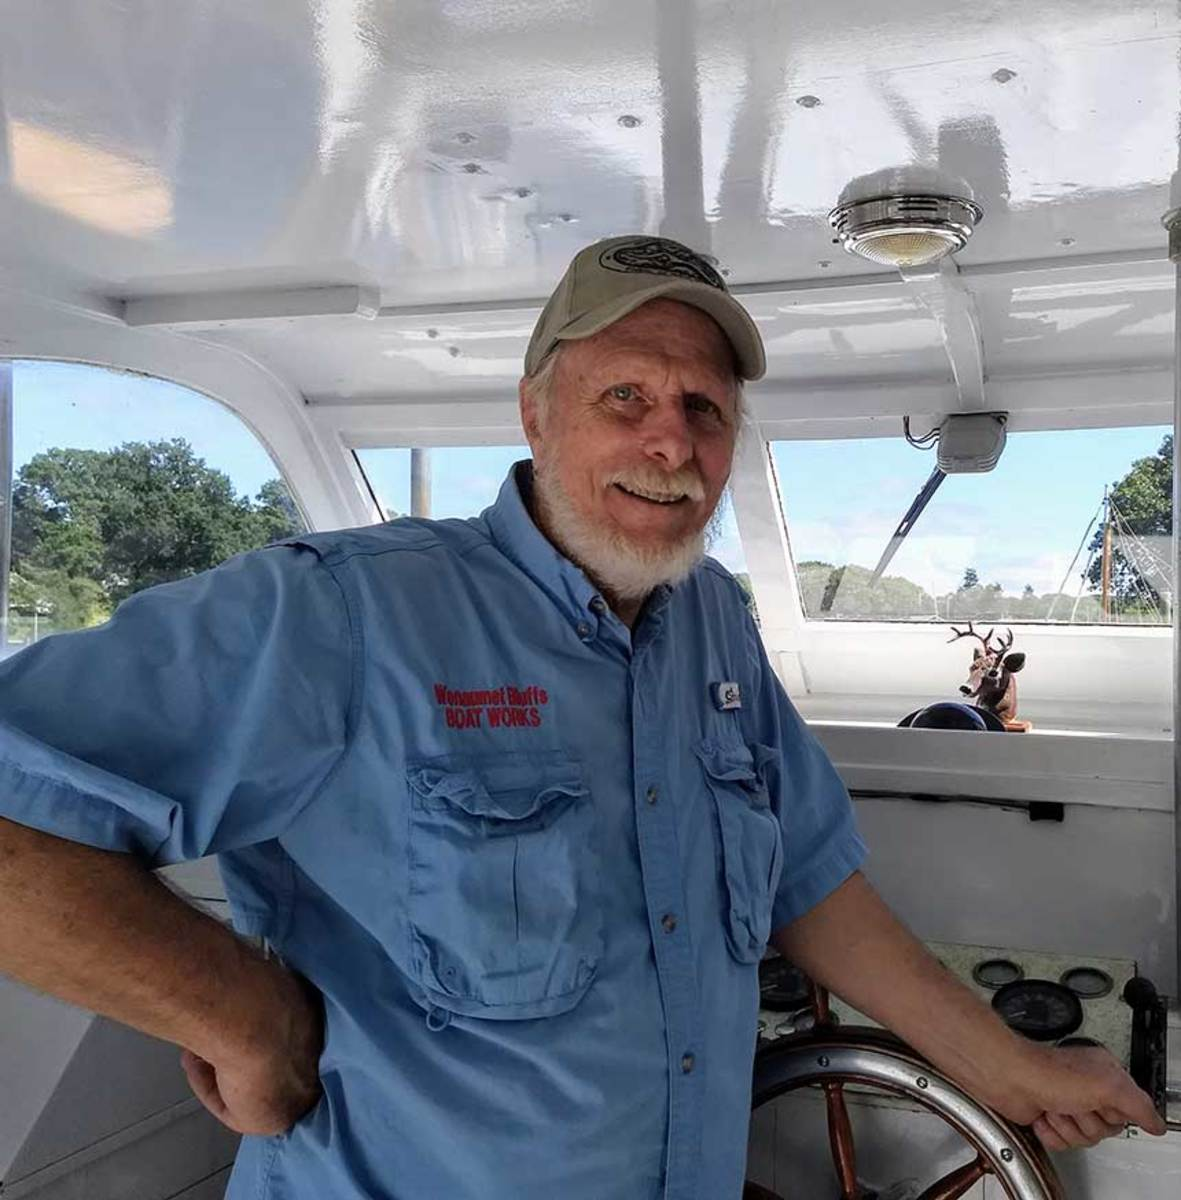 David Arch enjoys working on his classic boat, which can handle varying sea conditions with ease.